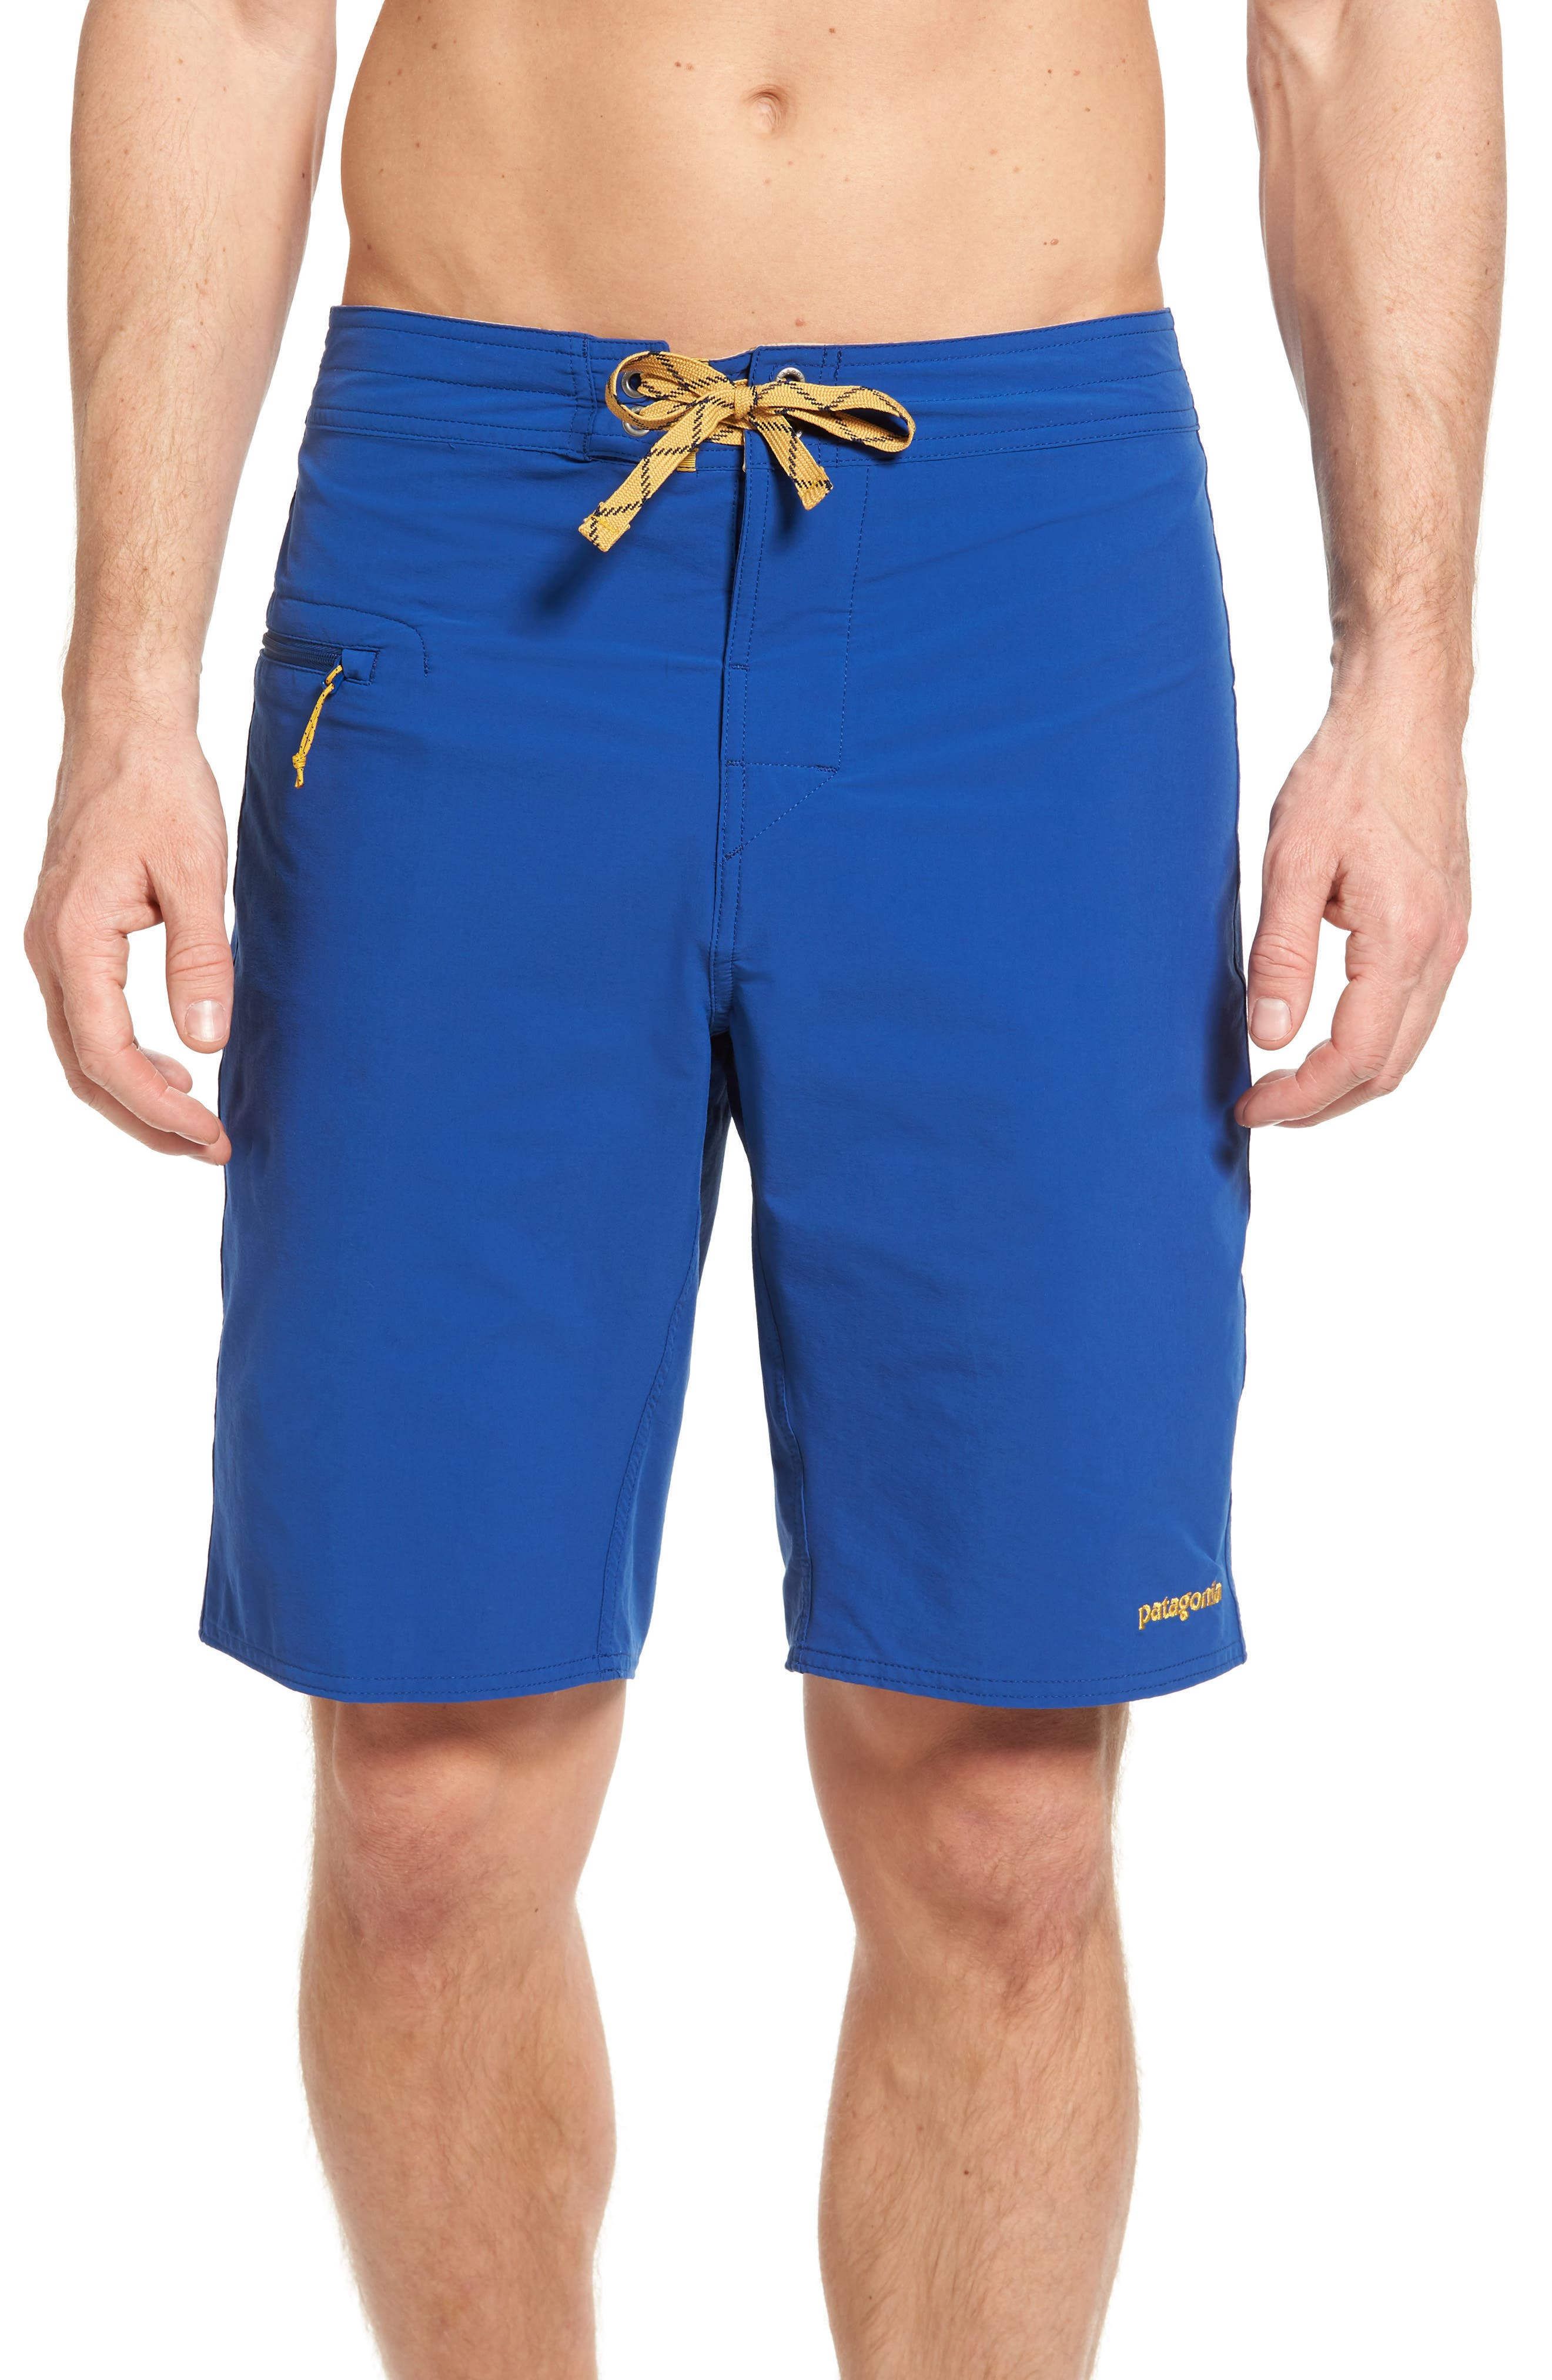 Wavefarer Board Shorts,                         Main,                         color, BLUE